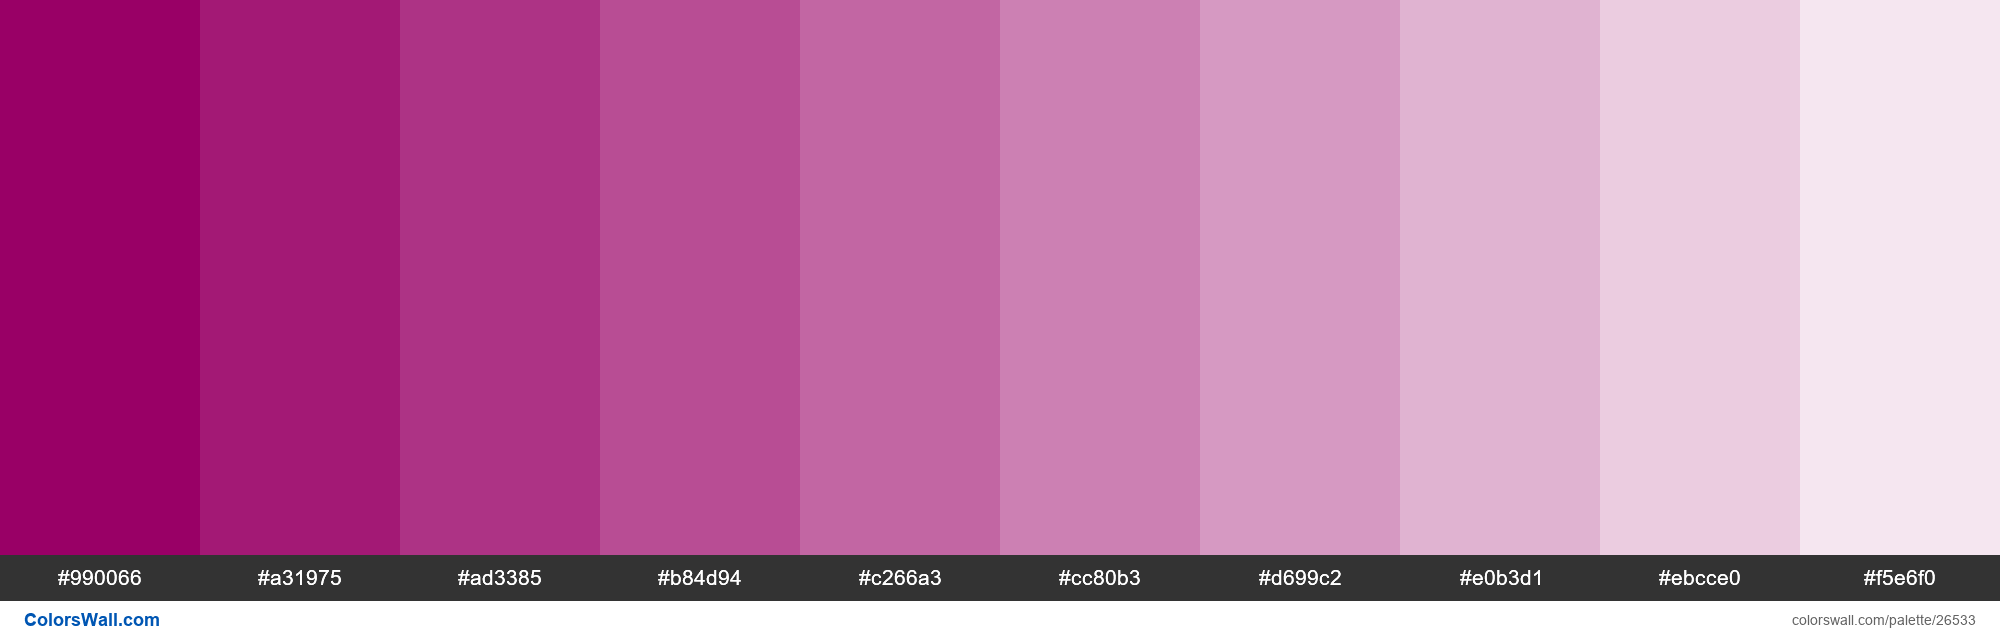 Tints of Eggplant color #990066 hex - #26533